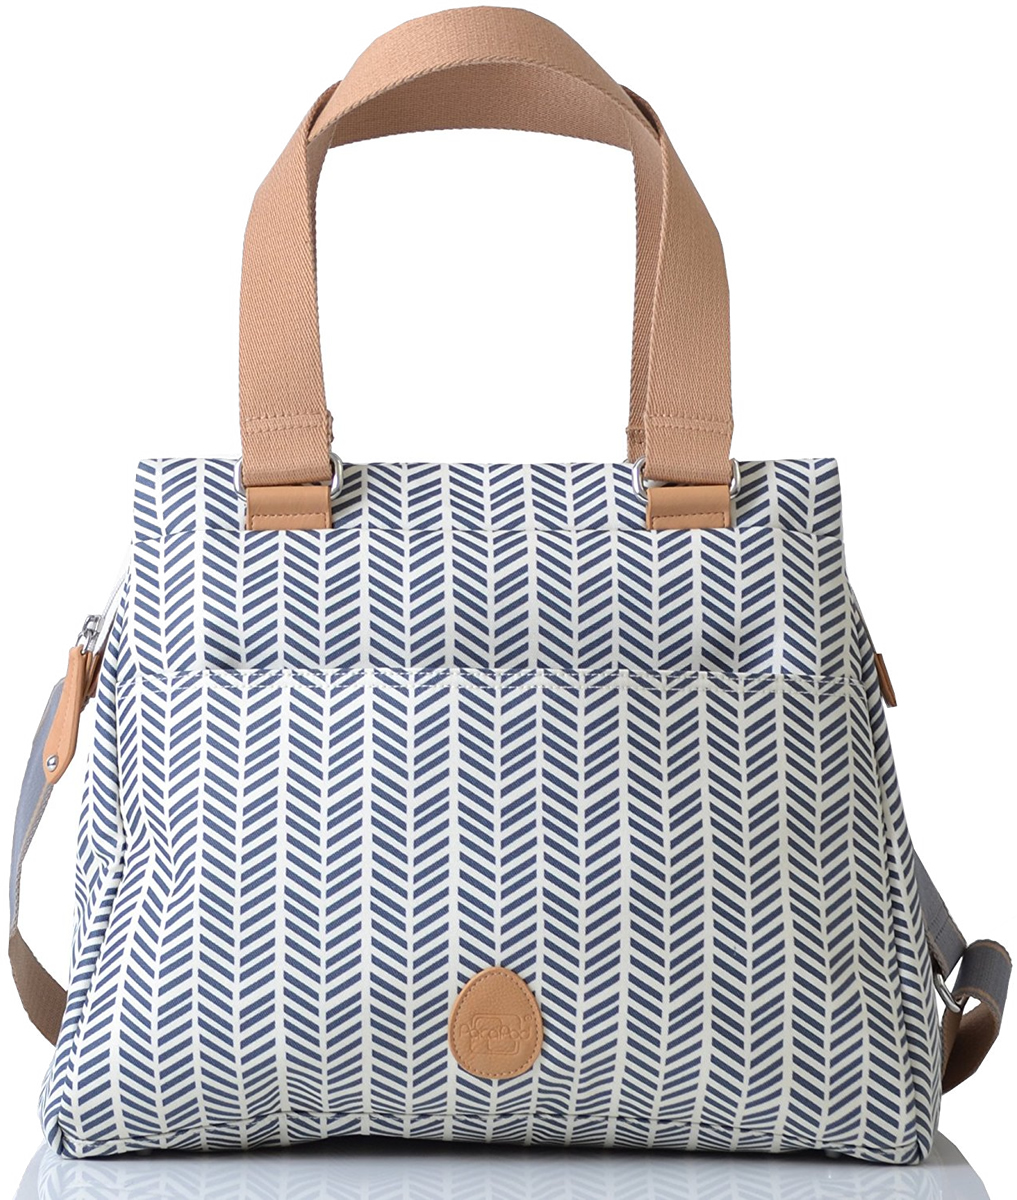 PacaPod Richmond Diaper Bag - Navy Herringbone